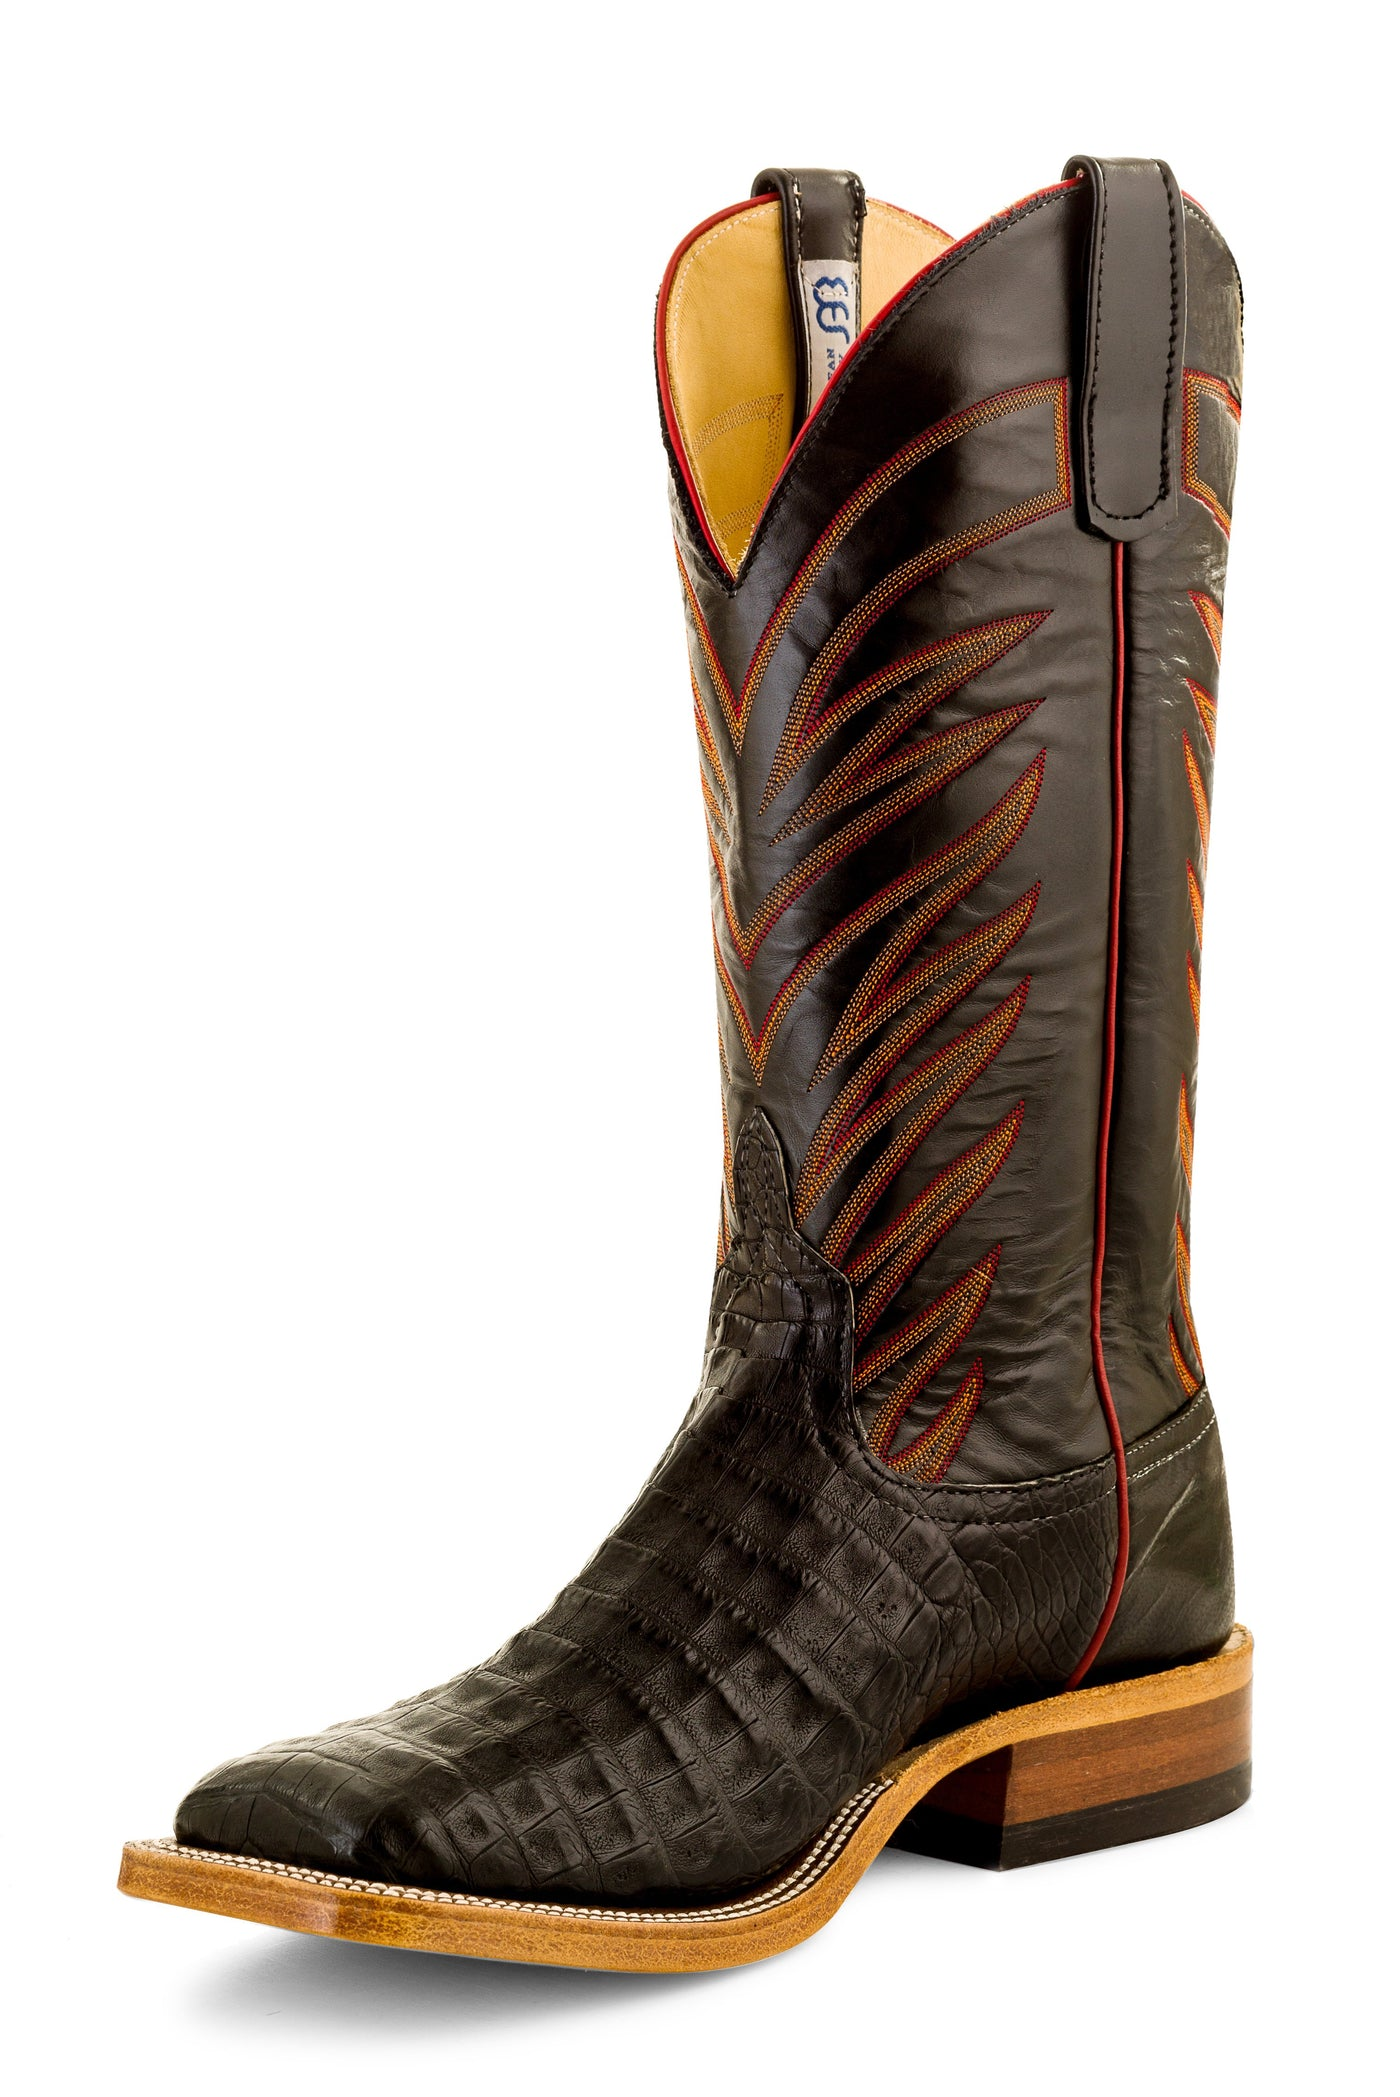 0f8c0777e95 Anderson Bean Adult Boots - S3005 Vamp Black Caiman Belly Black ...